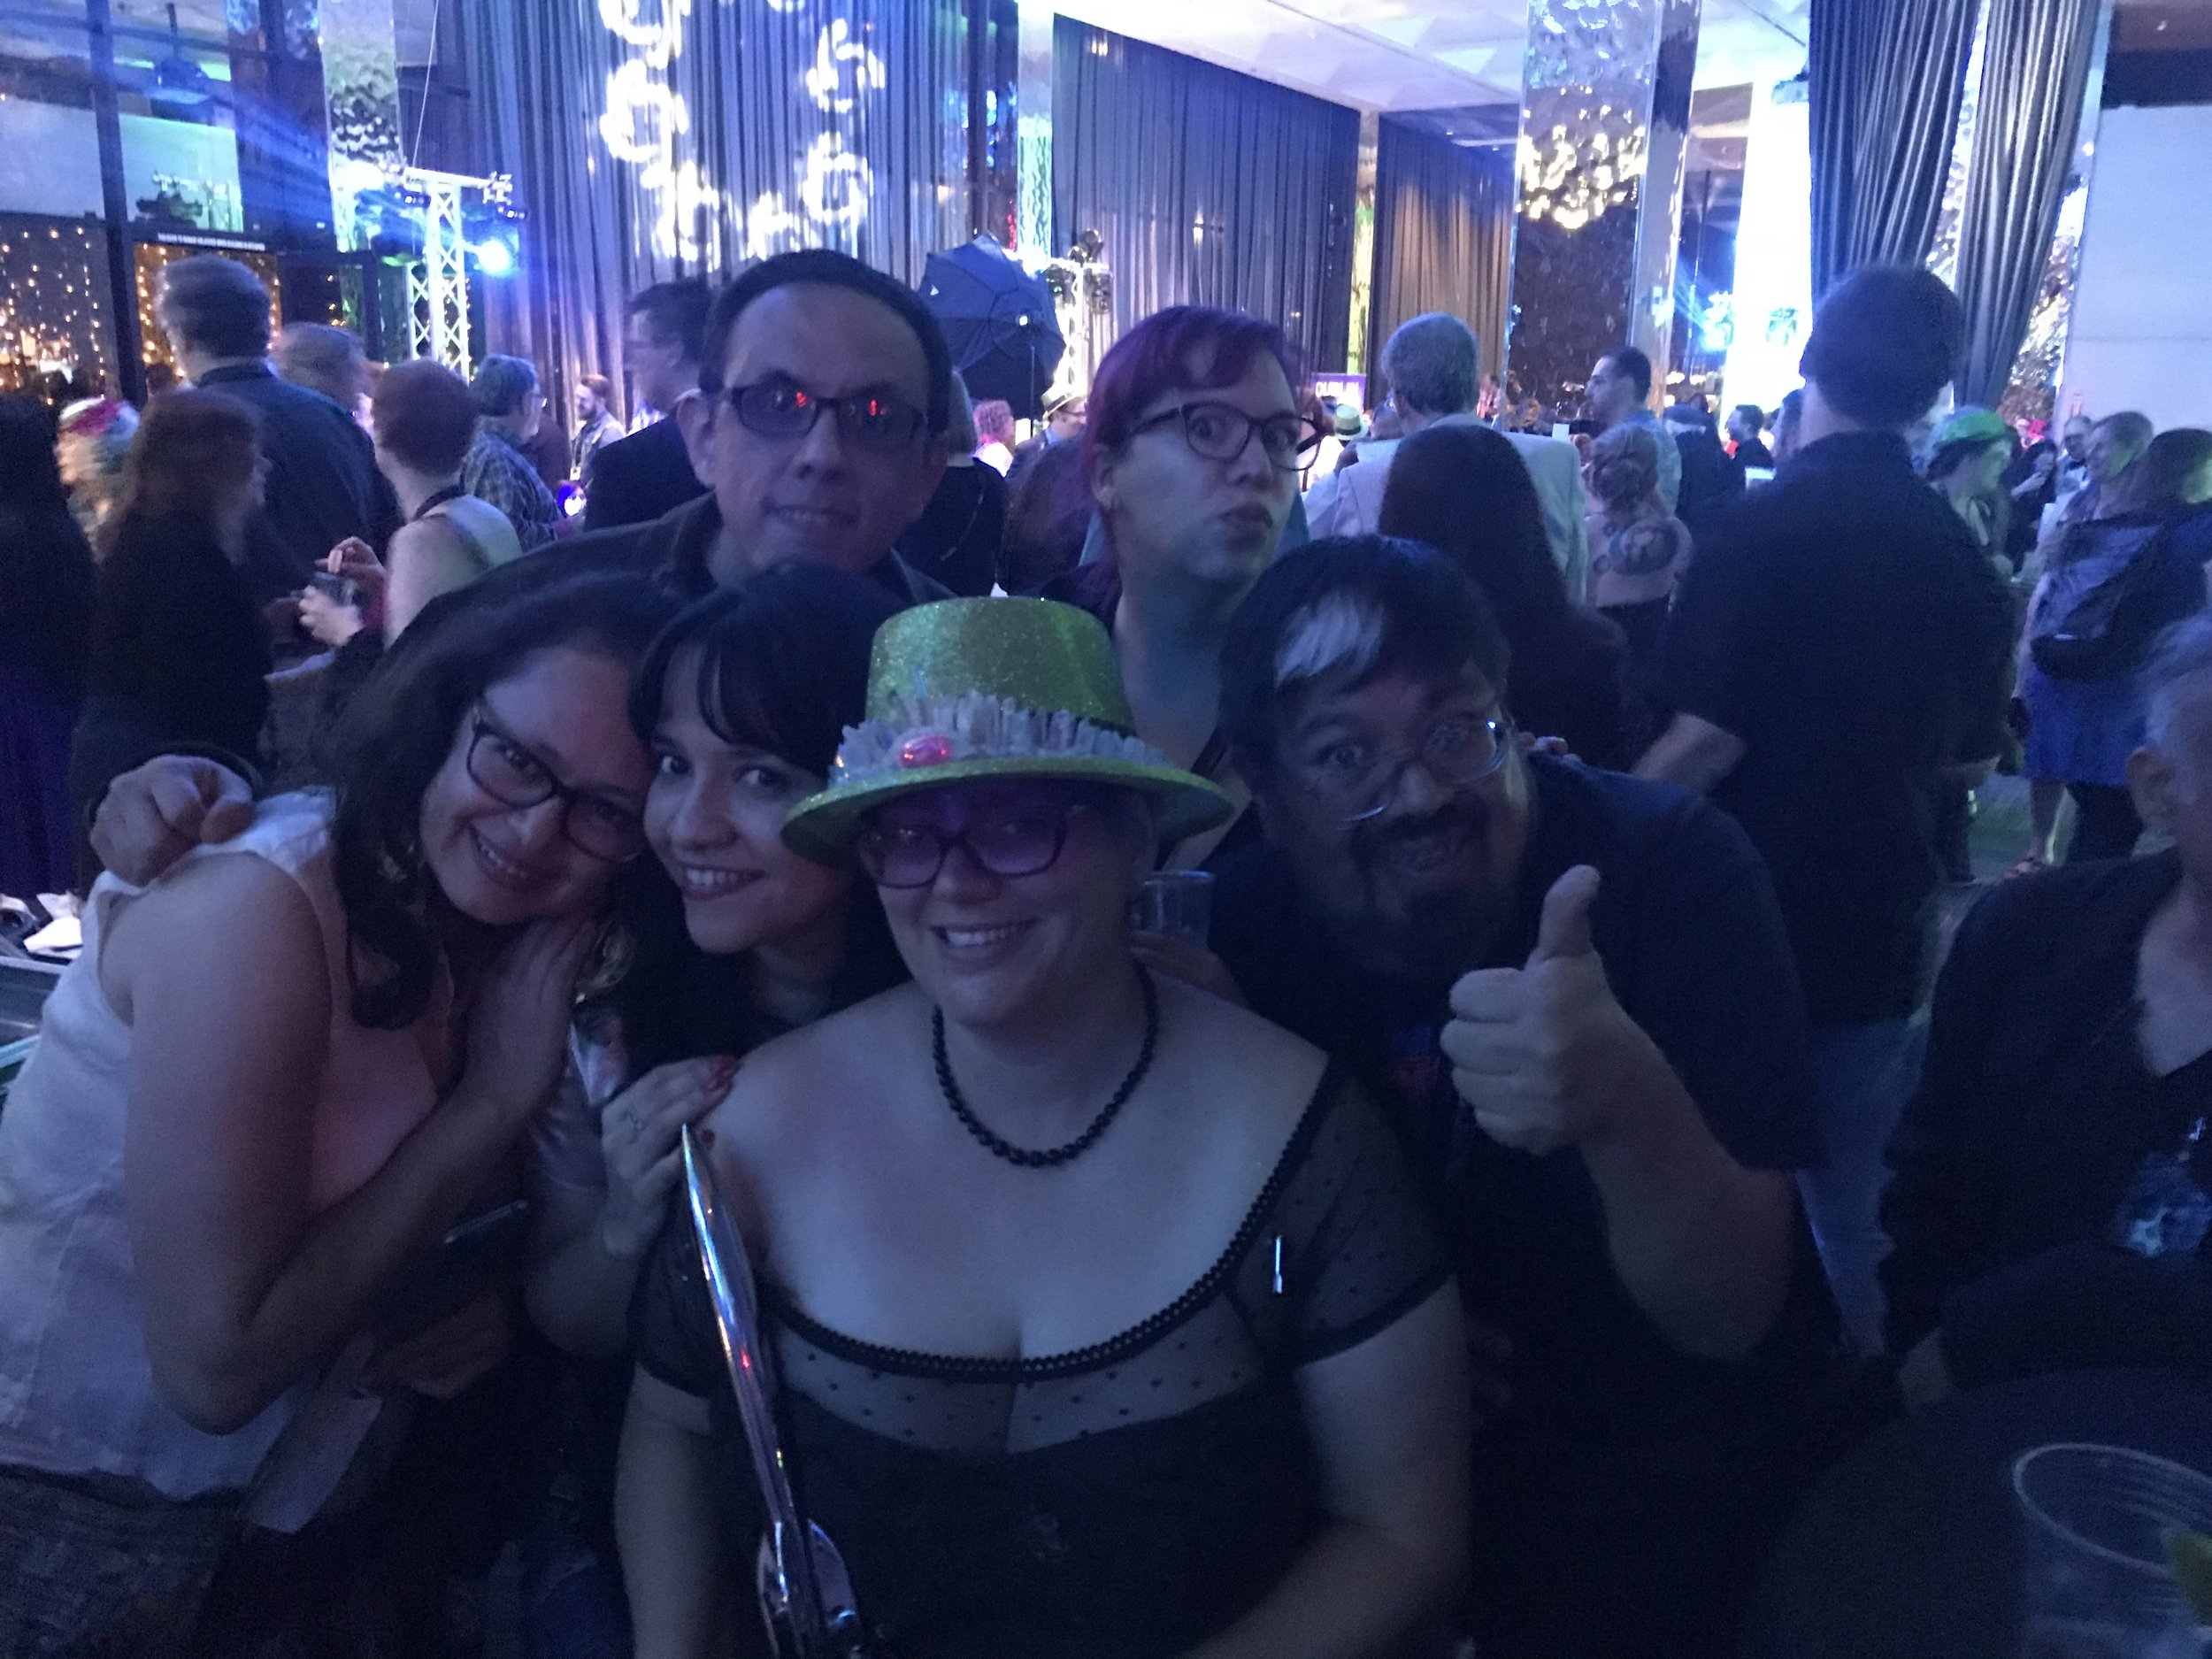 Libia Brenda, Alberto Chimal, Gabriela Damián, Raquel Castro, José Luis Zárate, and Julia Rios at the Hugo Losers party